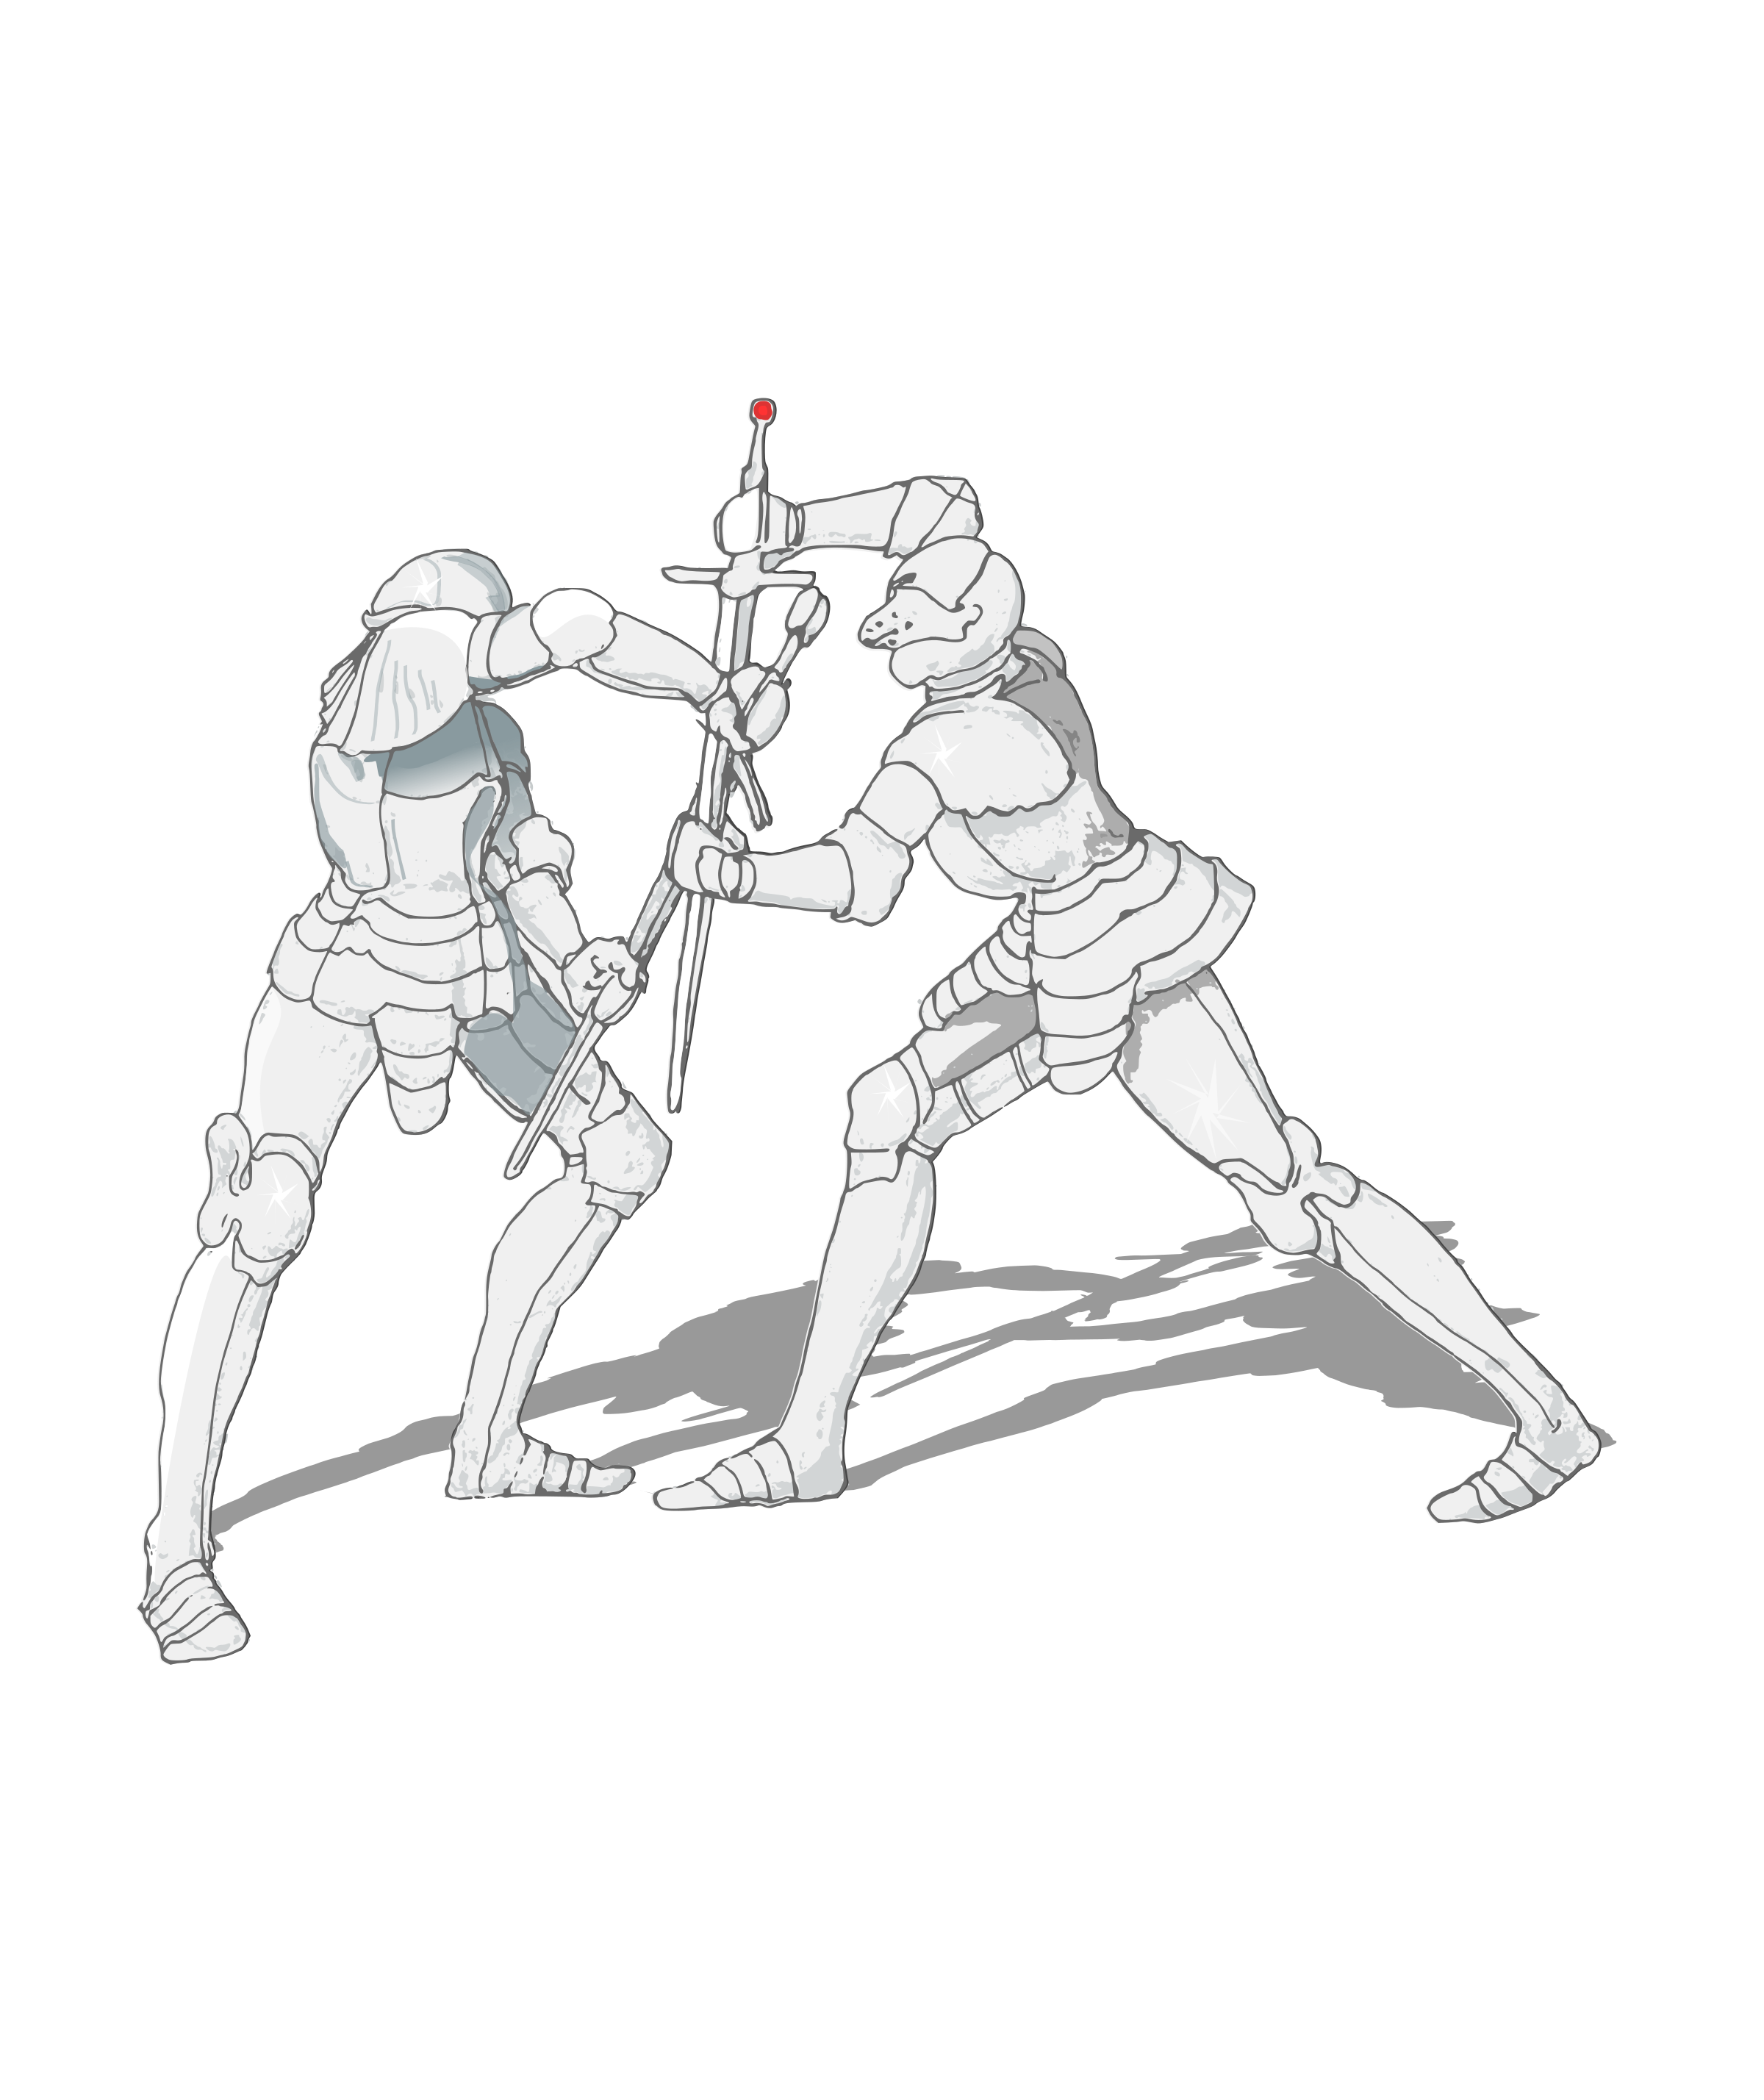 Drawing mannequins fighting. Sword fight at getdrawings